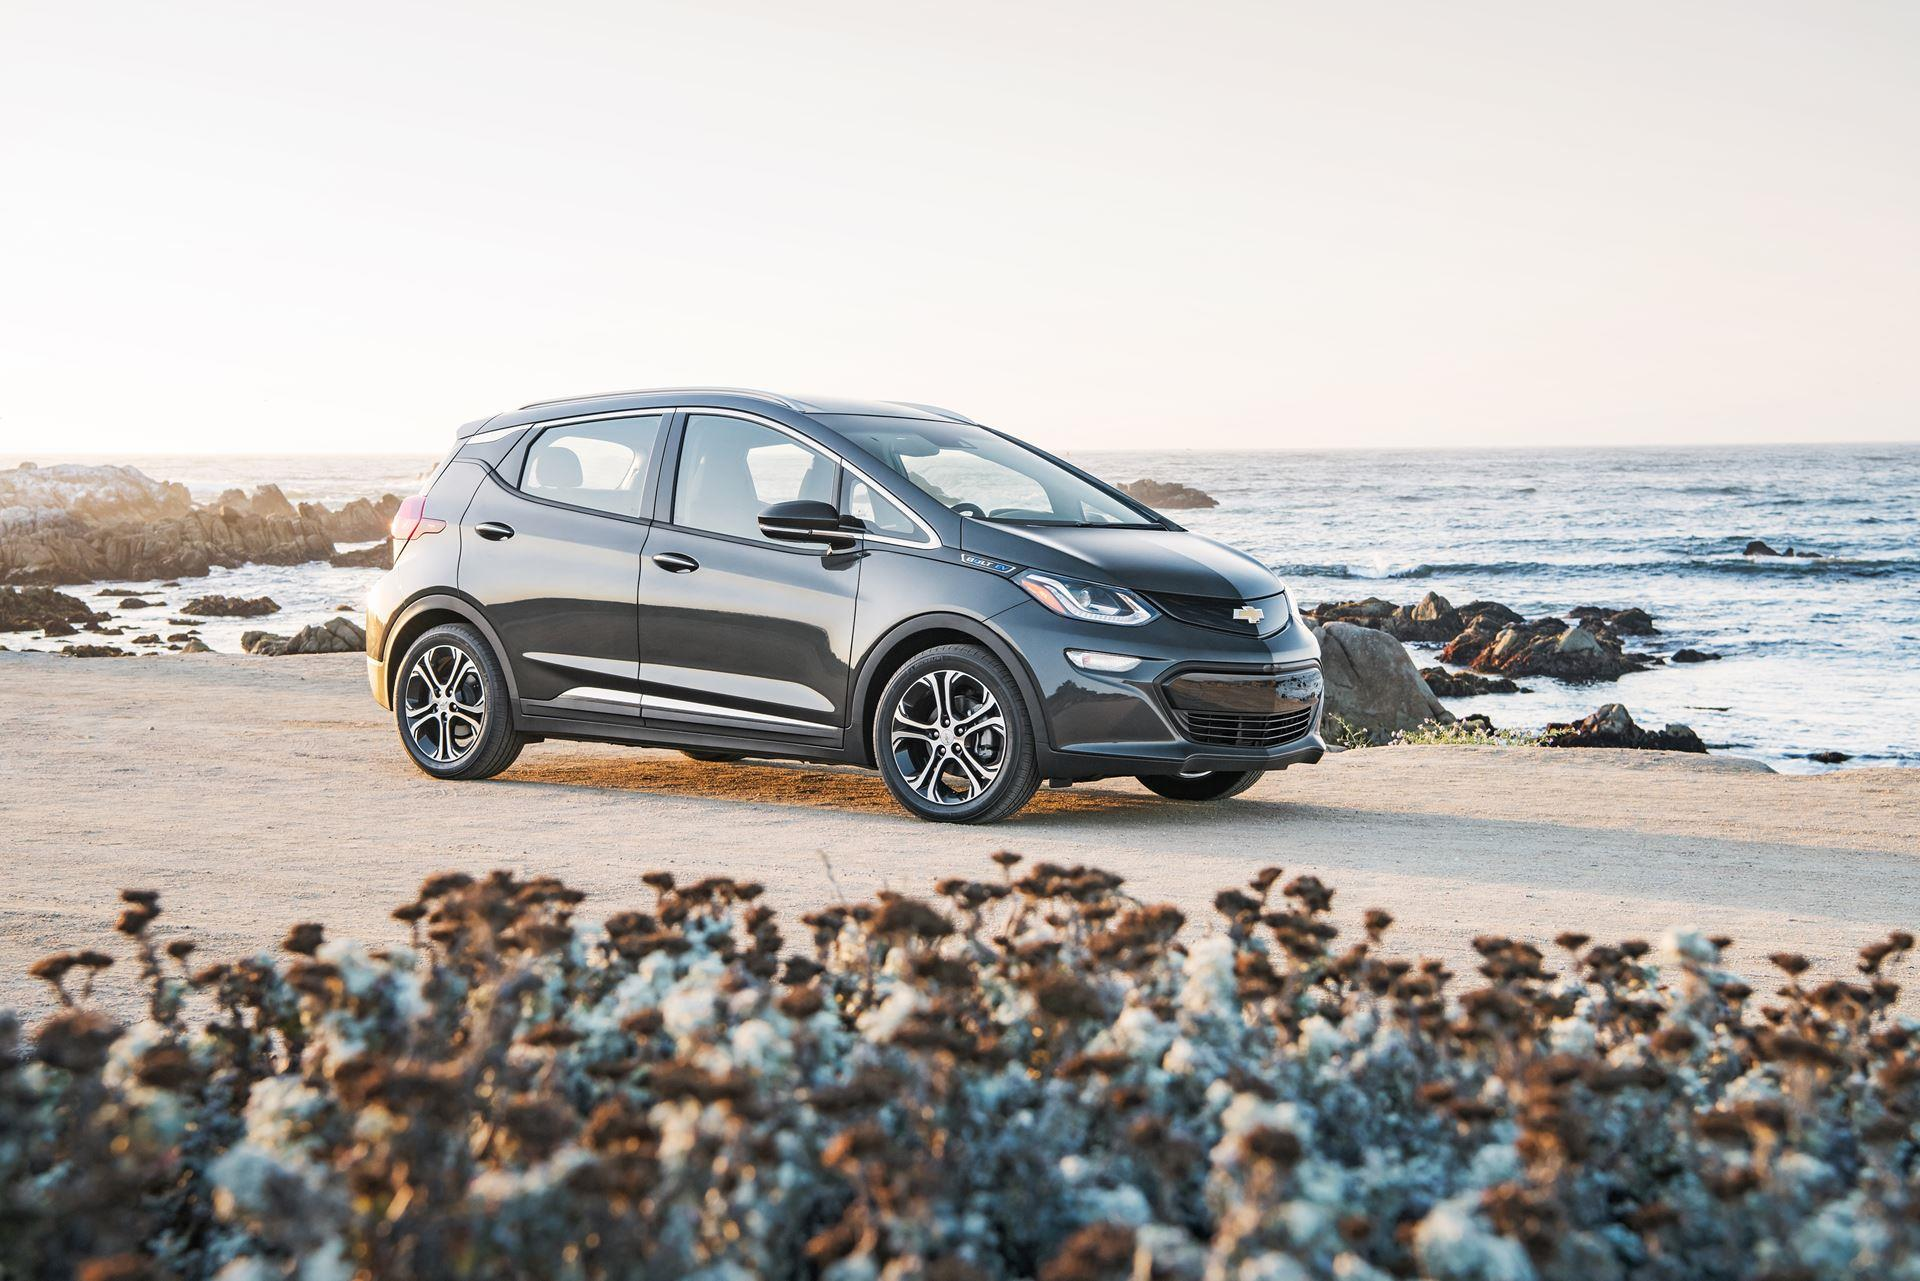 Chevrolet Bolt EV photo